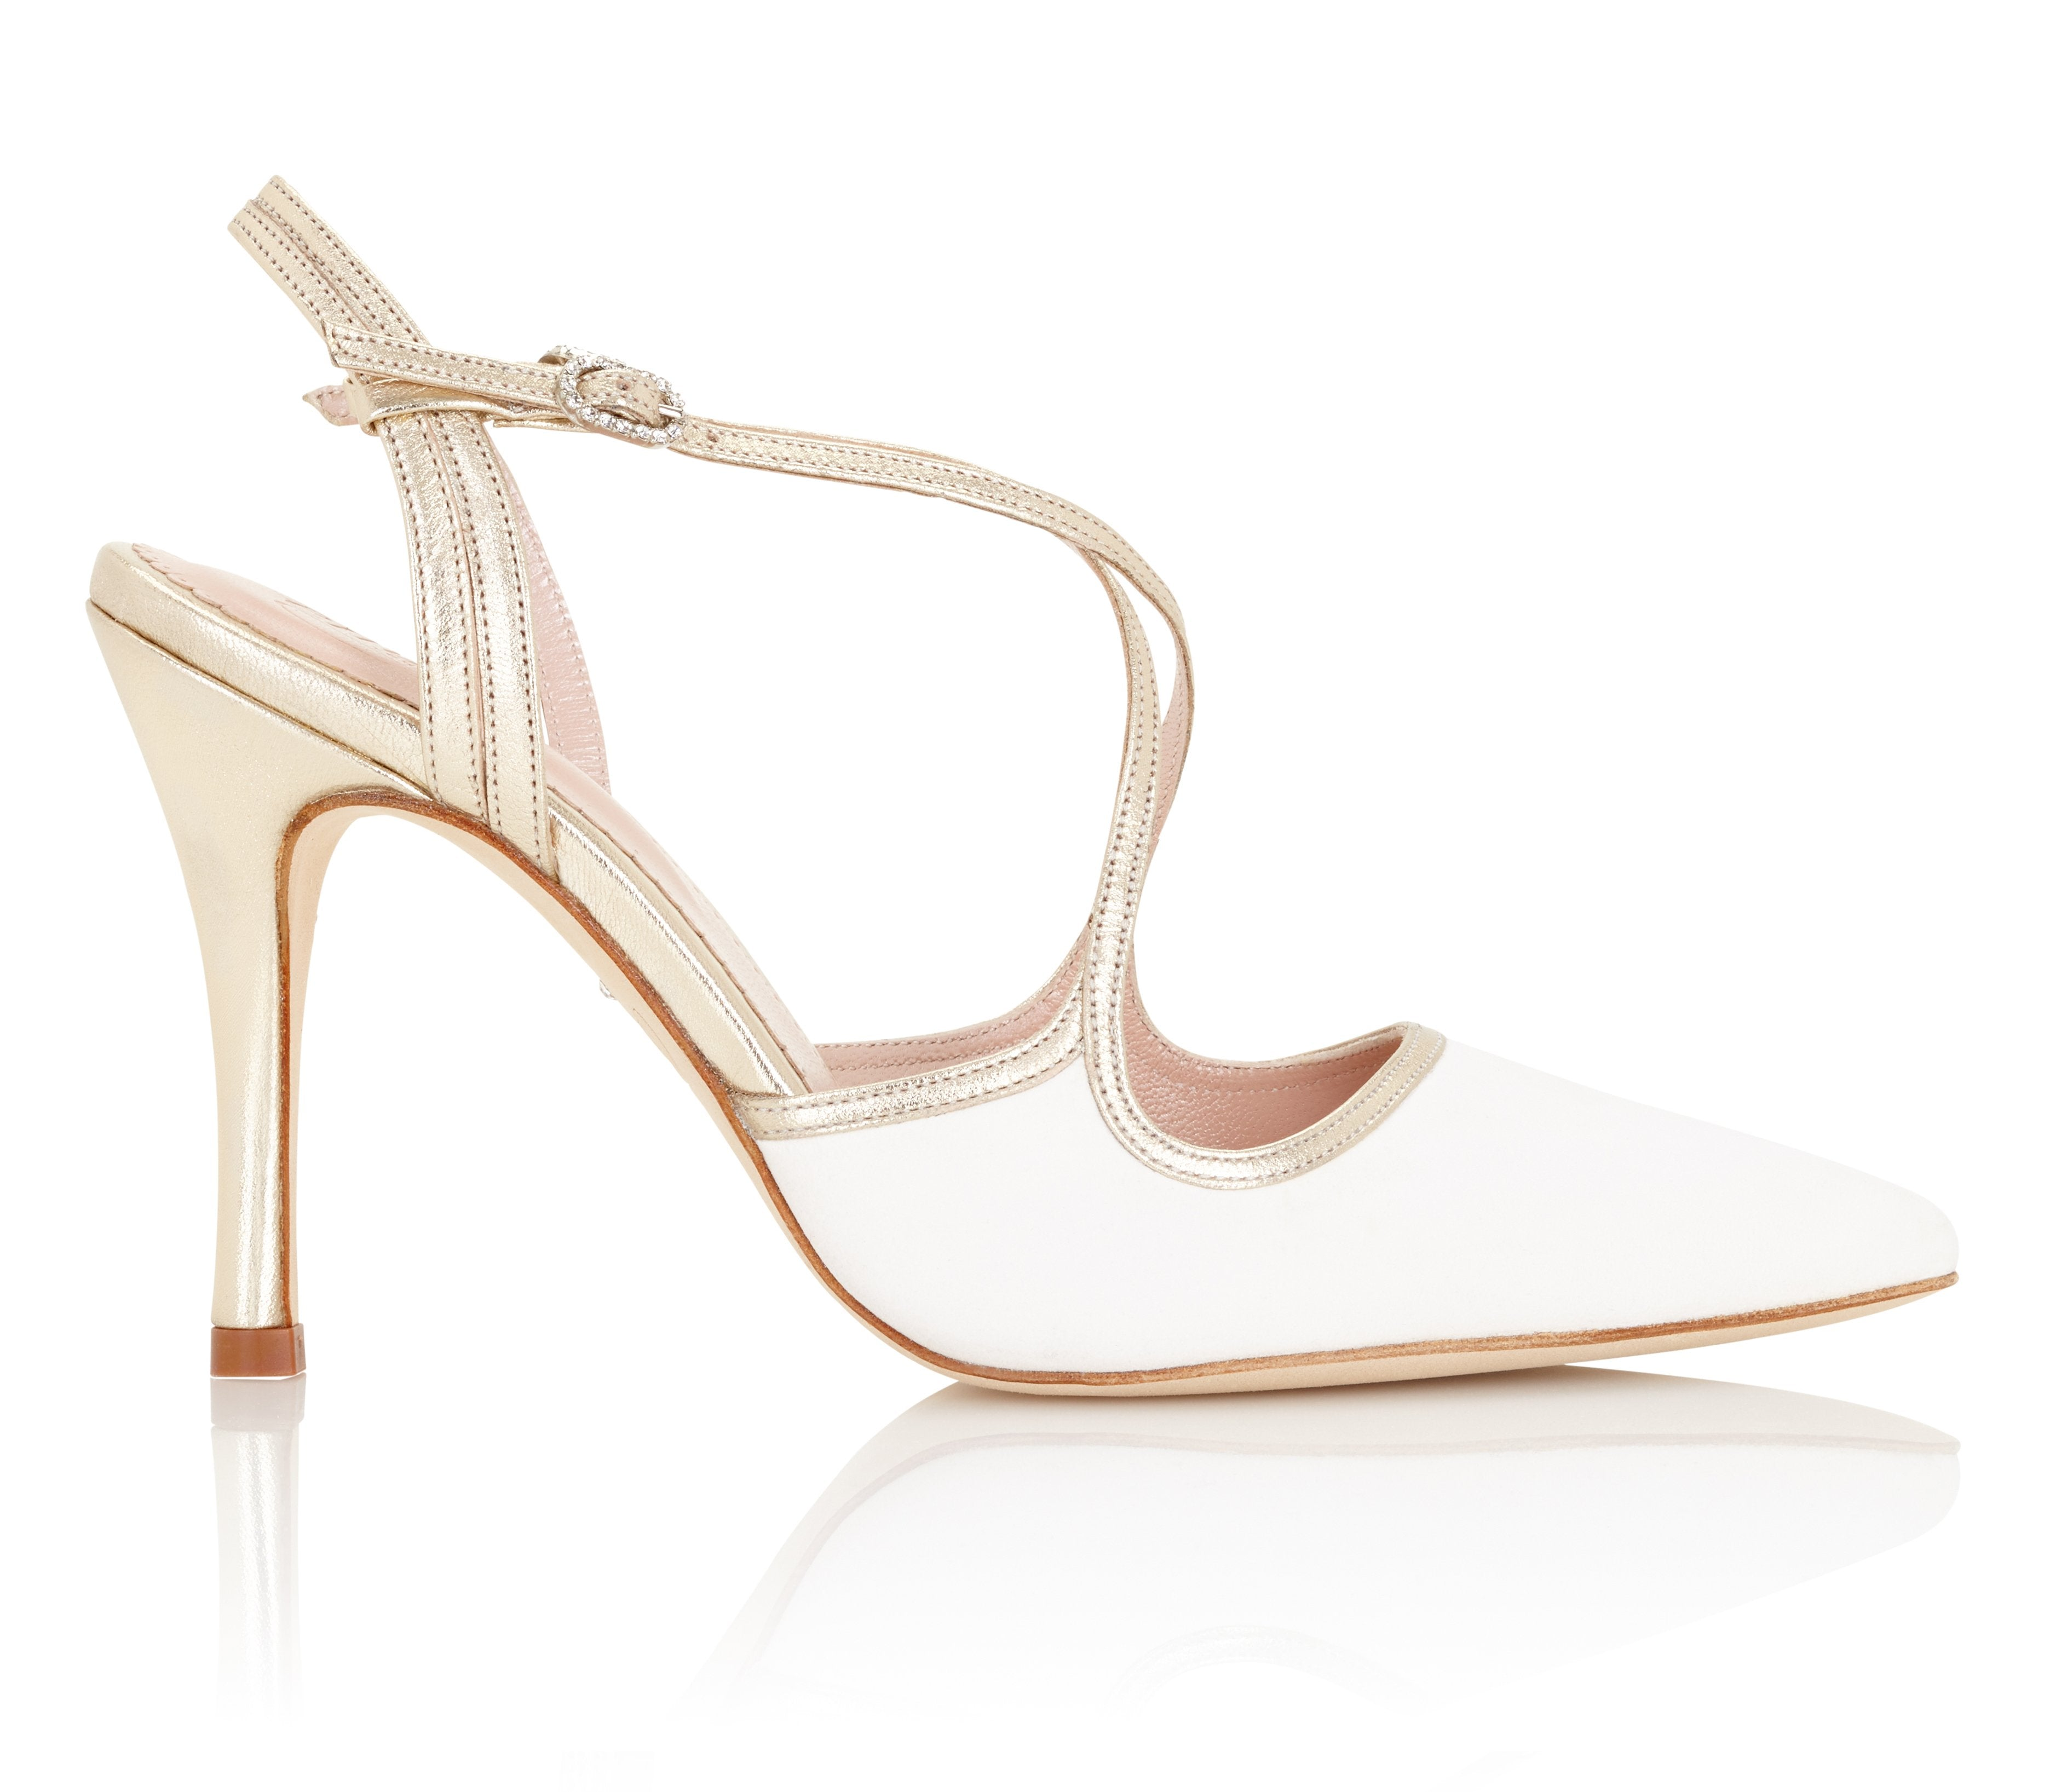 Rose Ivory Suede High Heel Wedding Shoes by Emmy London Ivory and Gold Suede Wedding Sandals